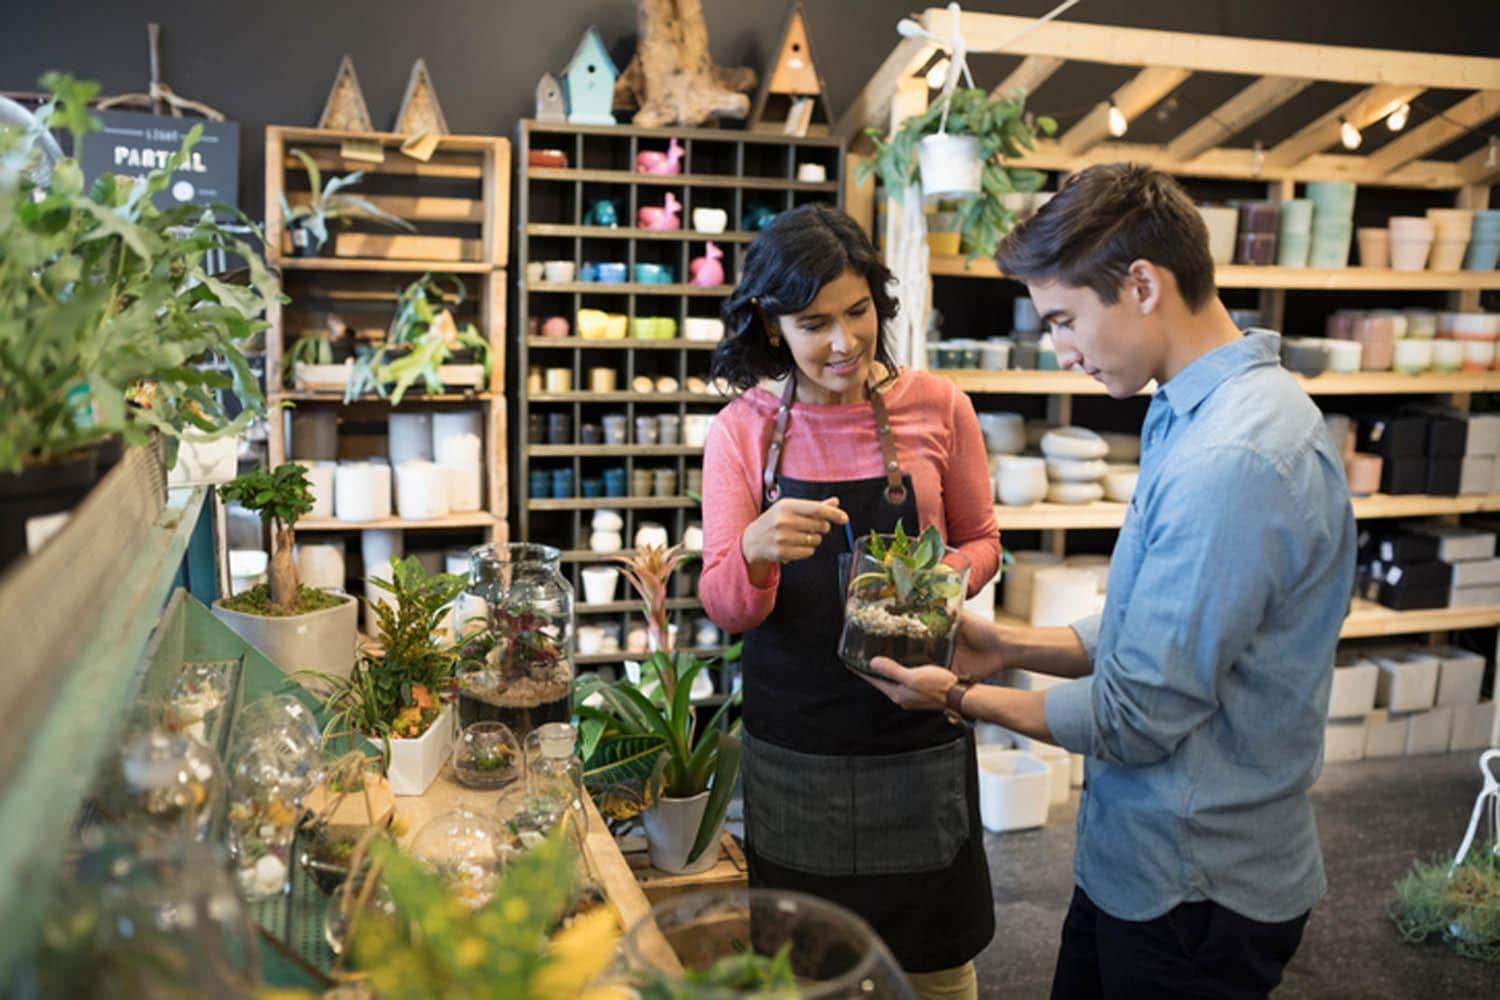 Female shop owner helping male customer shopping in plant shop